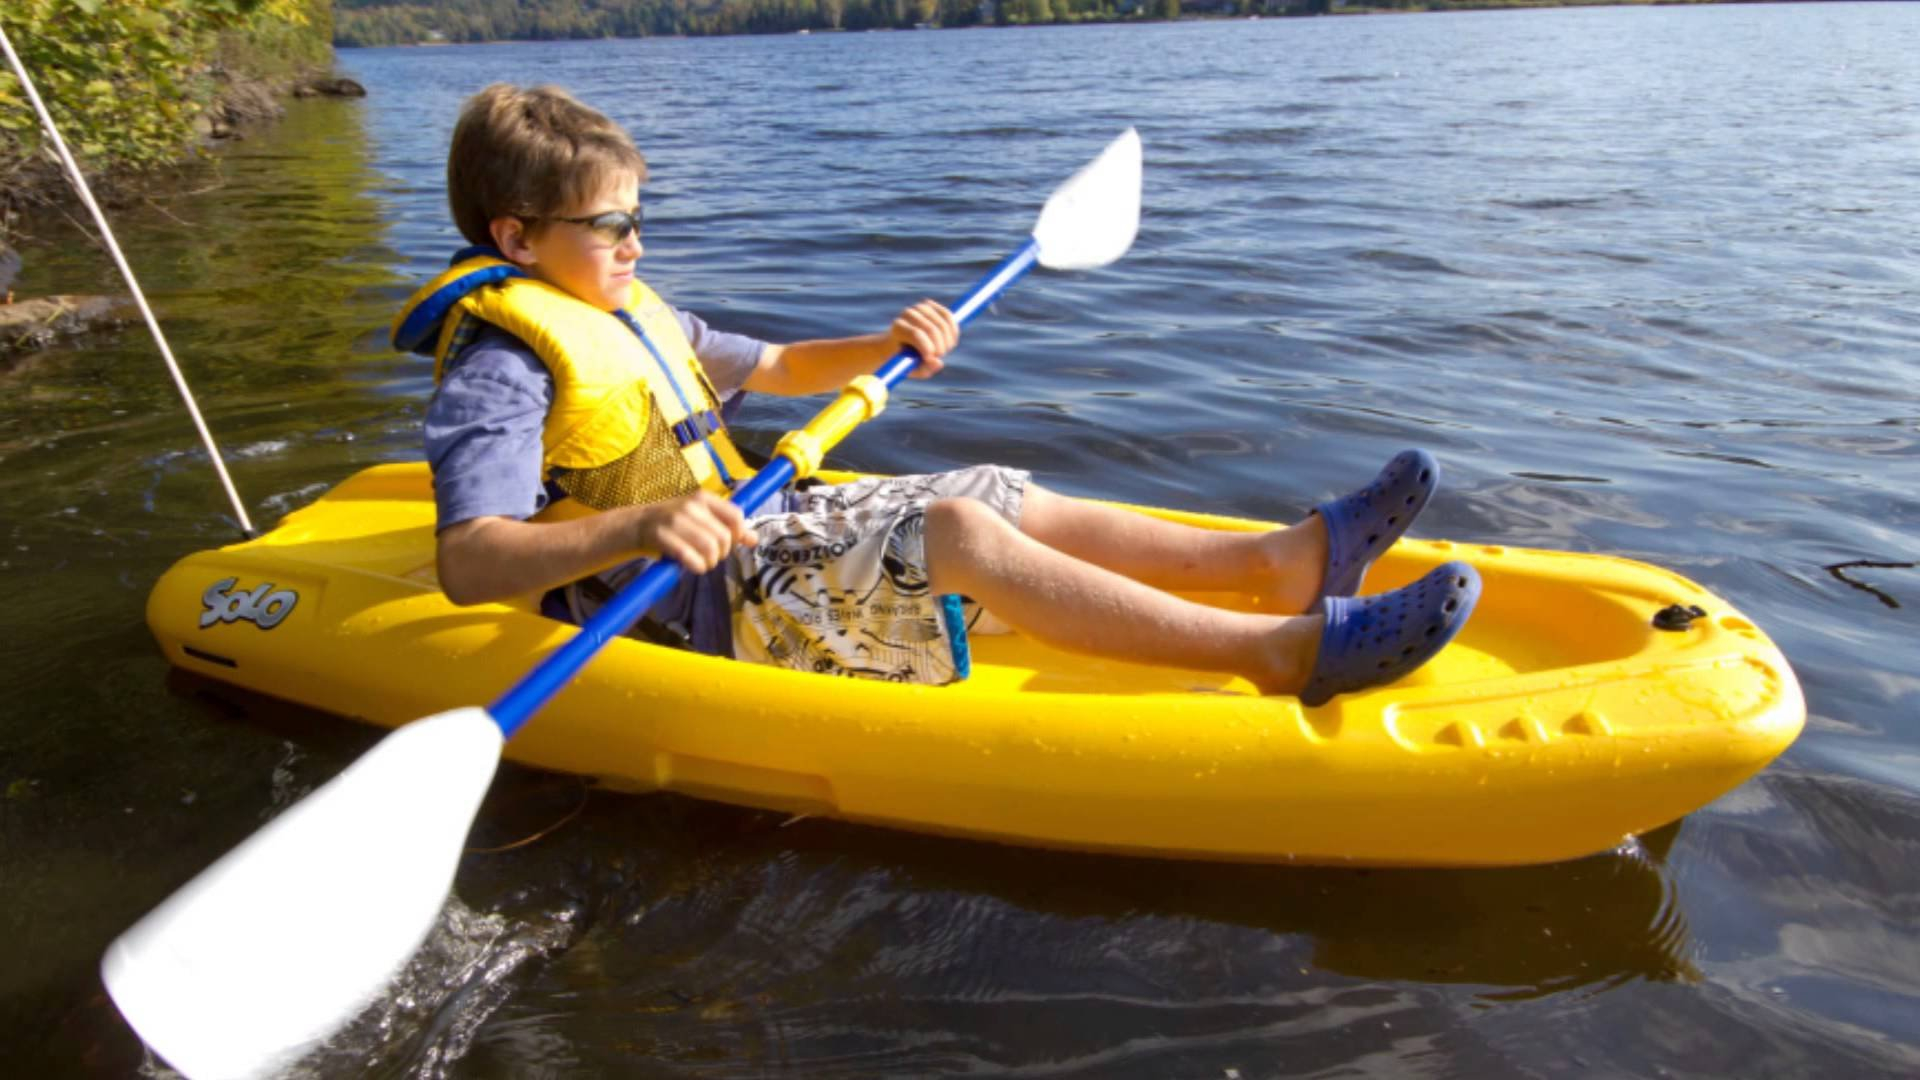 Pelican Solo Sit-On Kayak, 6-ft, Yellow by Pelican